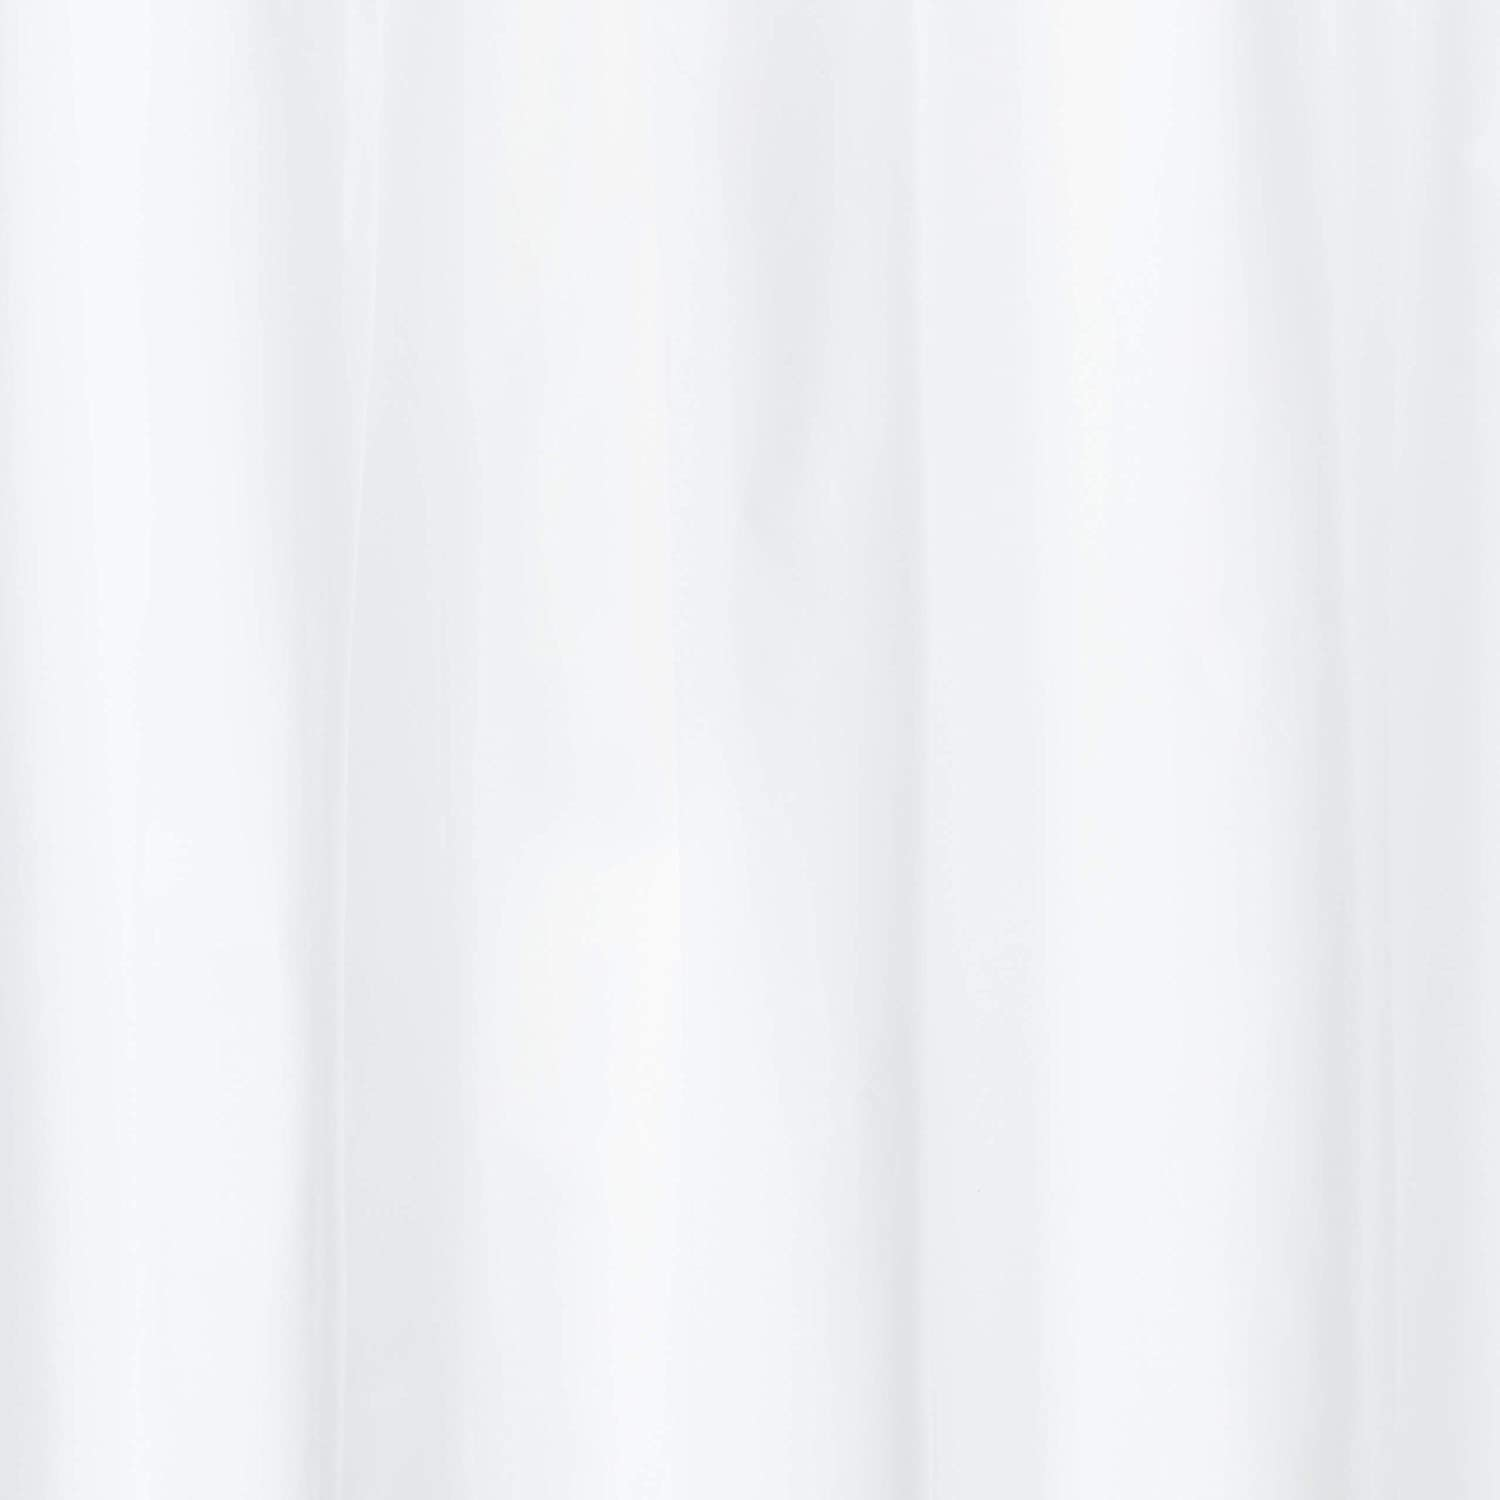 72 x 84 White Royal Bath Extra Long and Heavy 10 Gauge PEVA Non-Toxic Shower Curtain Liner with Metal Grommets